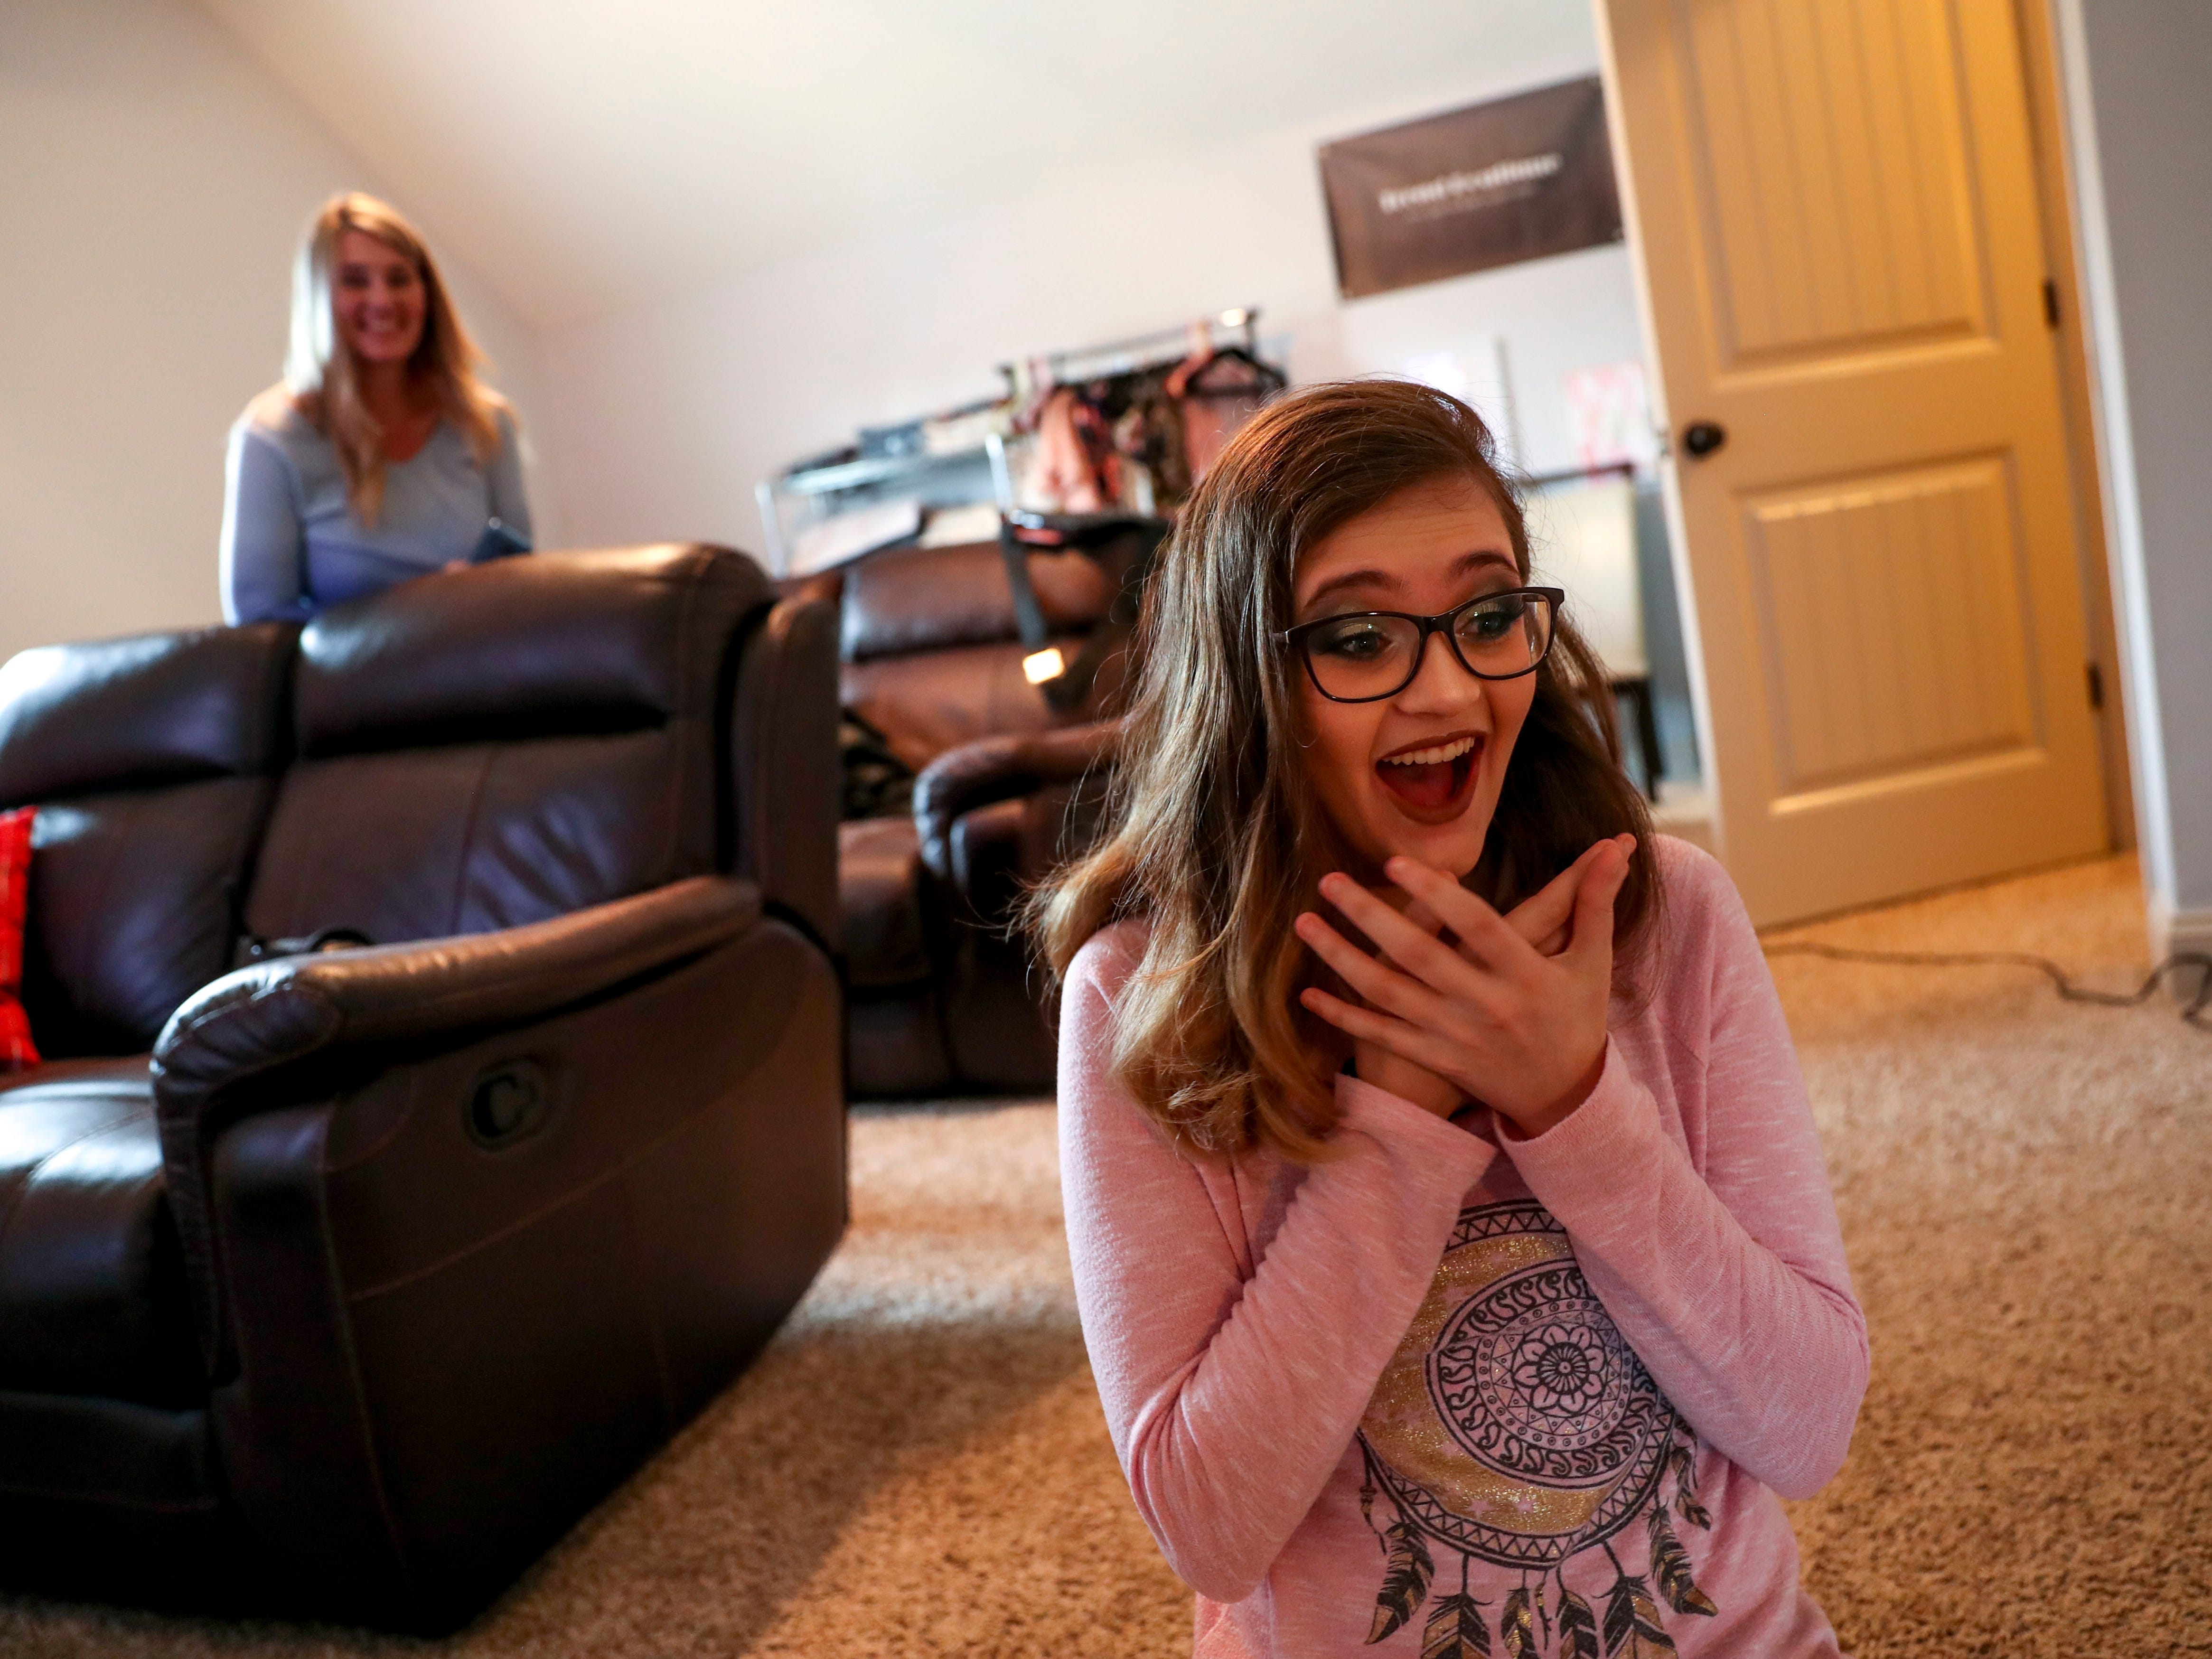 Madison Russell falls to her knees in excitement reacting to the makeup done for her prom at the Tejada household in Clarksville, Tenn., on Saturday, May 4, 2019.